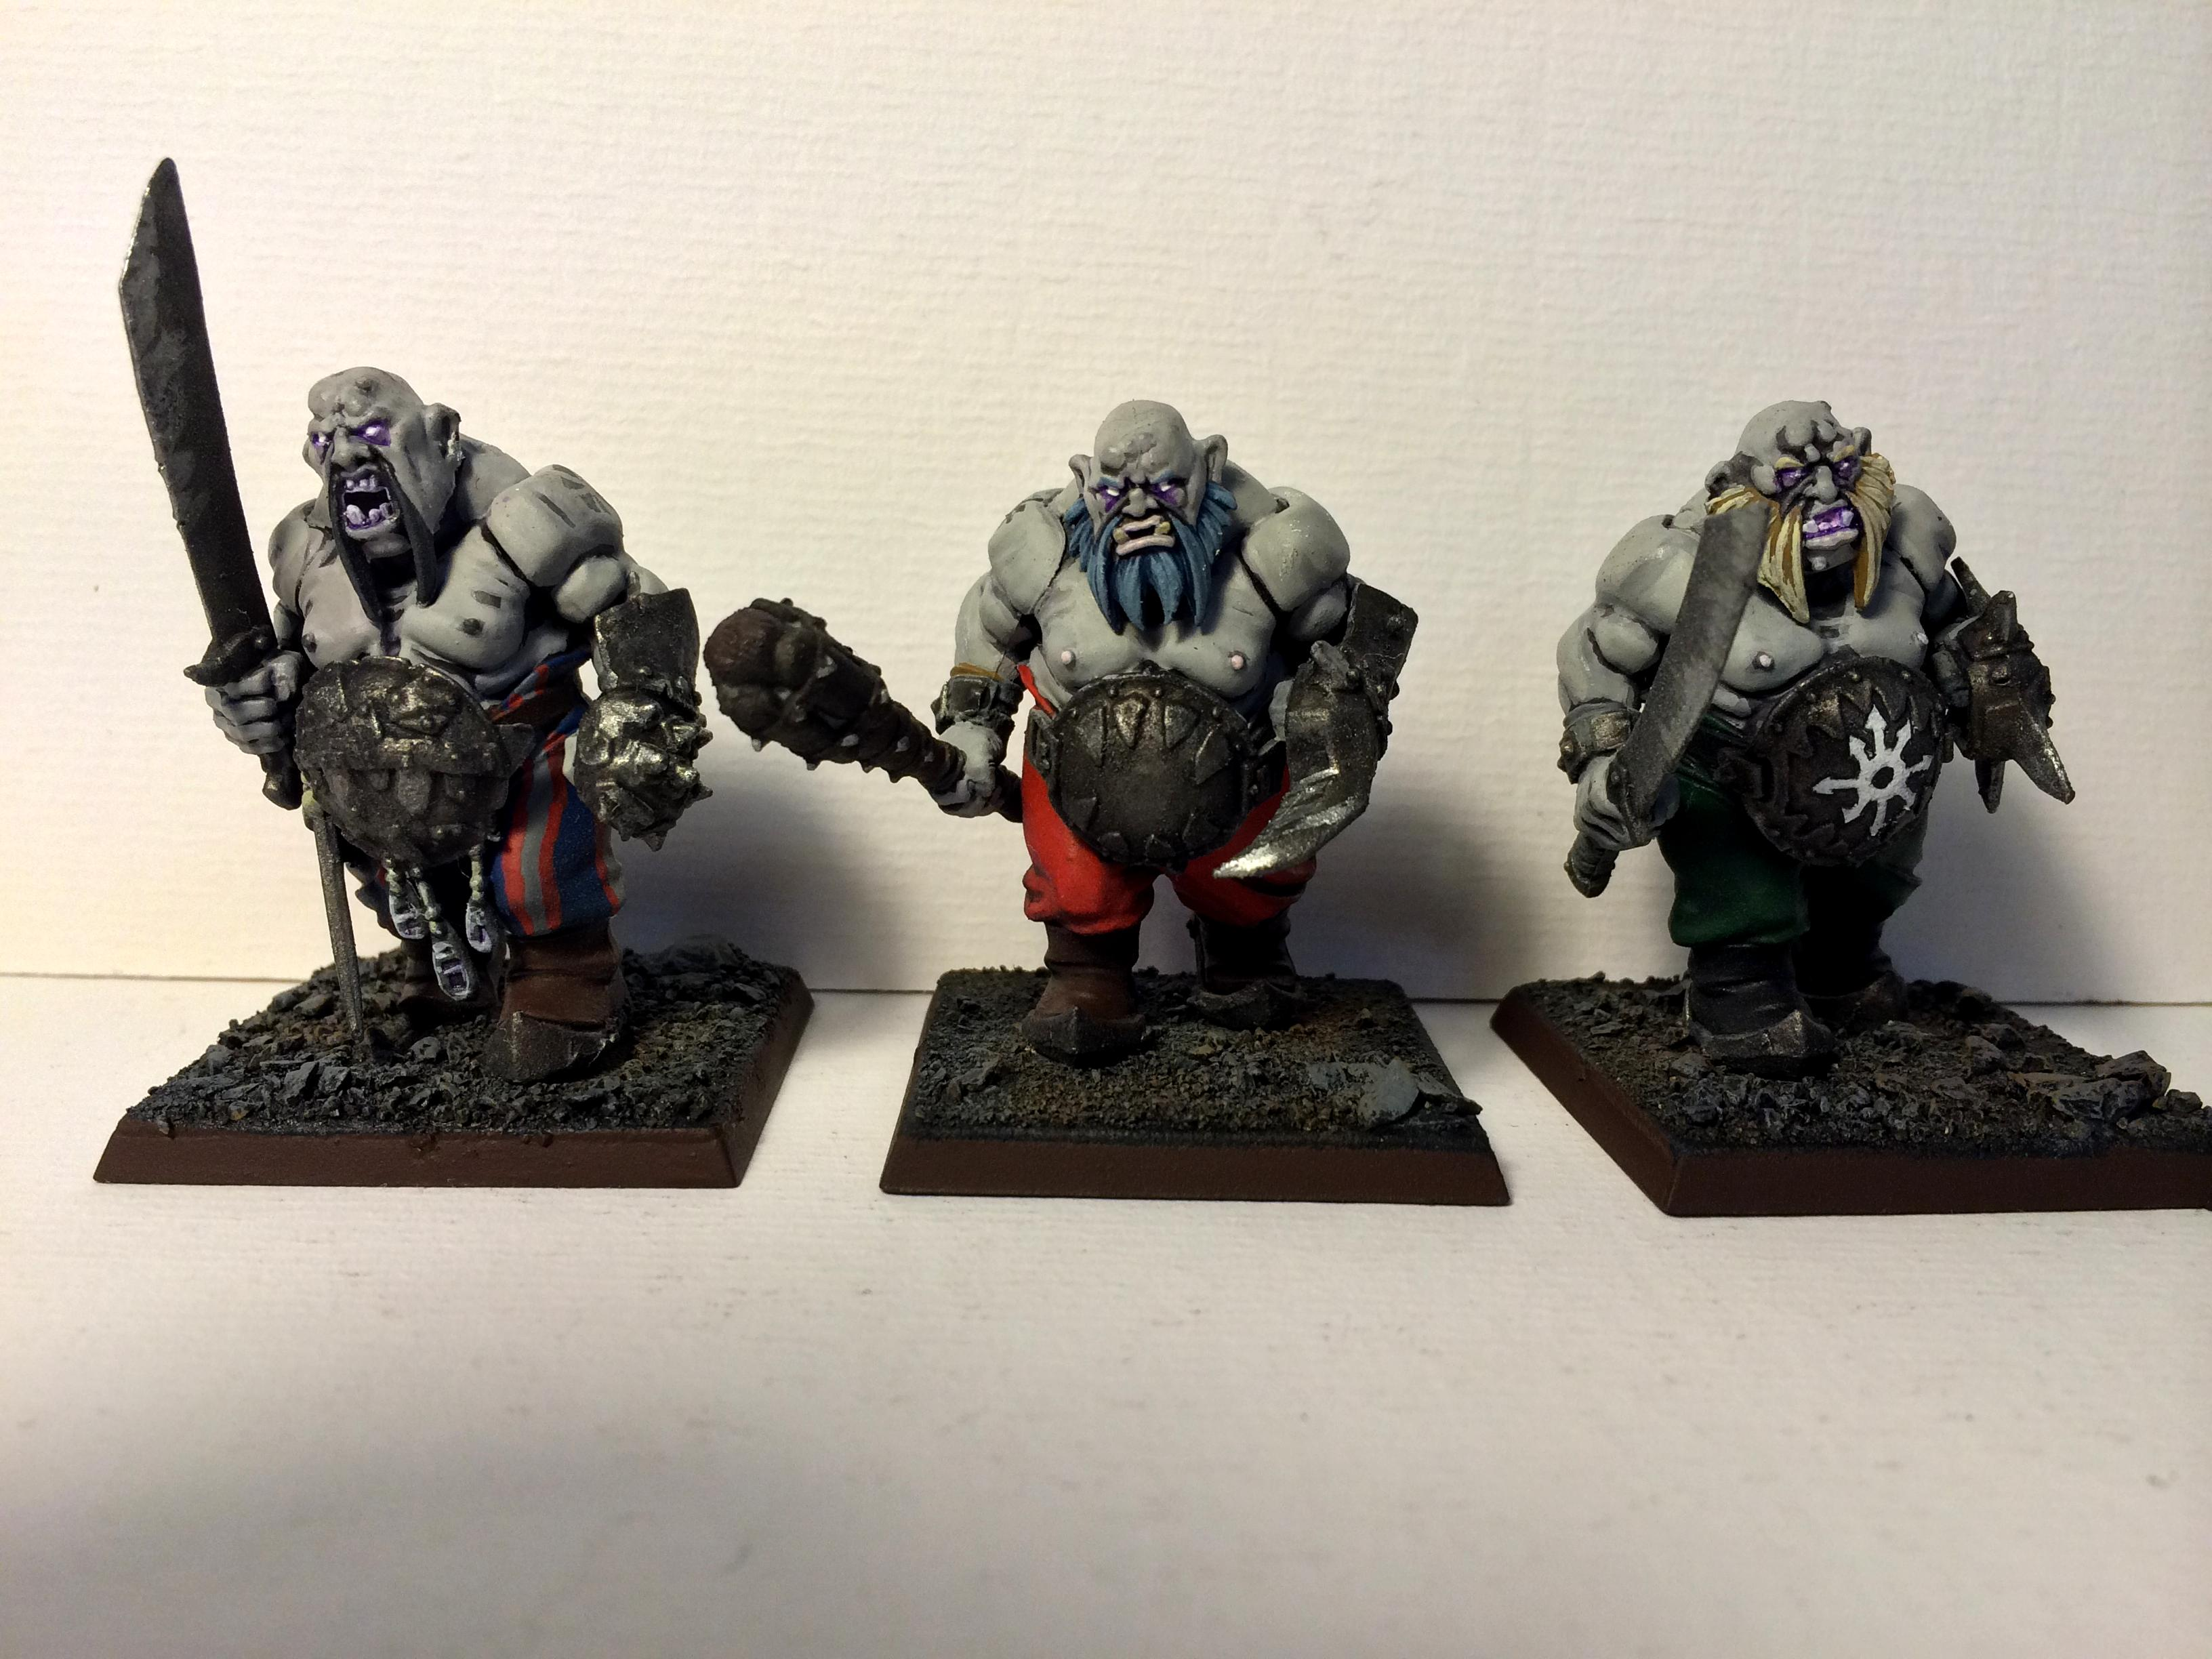 Airbrush, Alternative, Chaos, Chaos Ogres, Evil, Fat, Ogres, Purple, Skin, Stripes, The Reactor Core, Vardenv2, Warhammer Fantasy